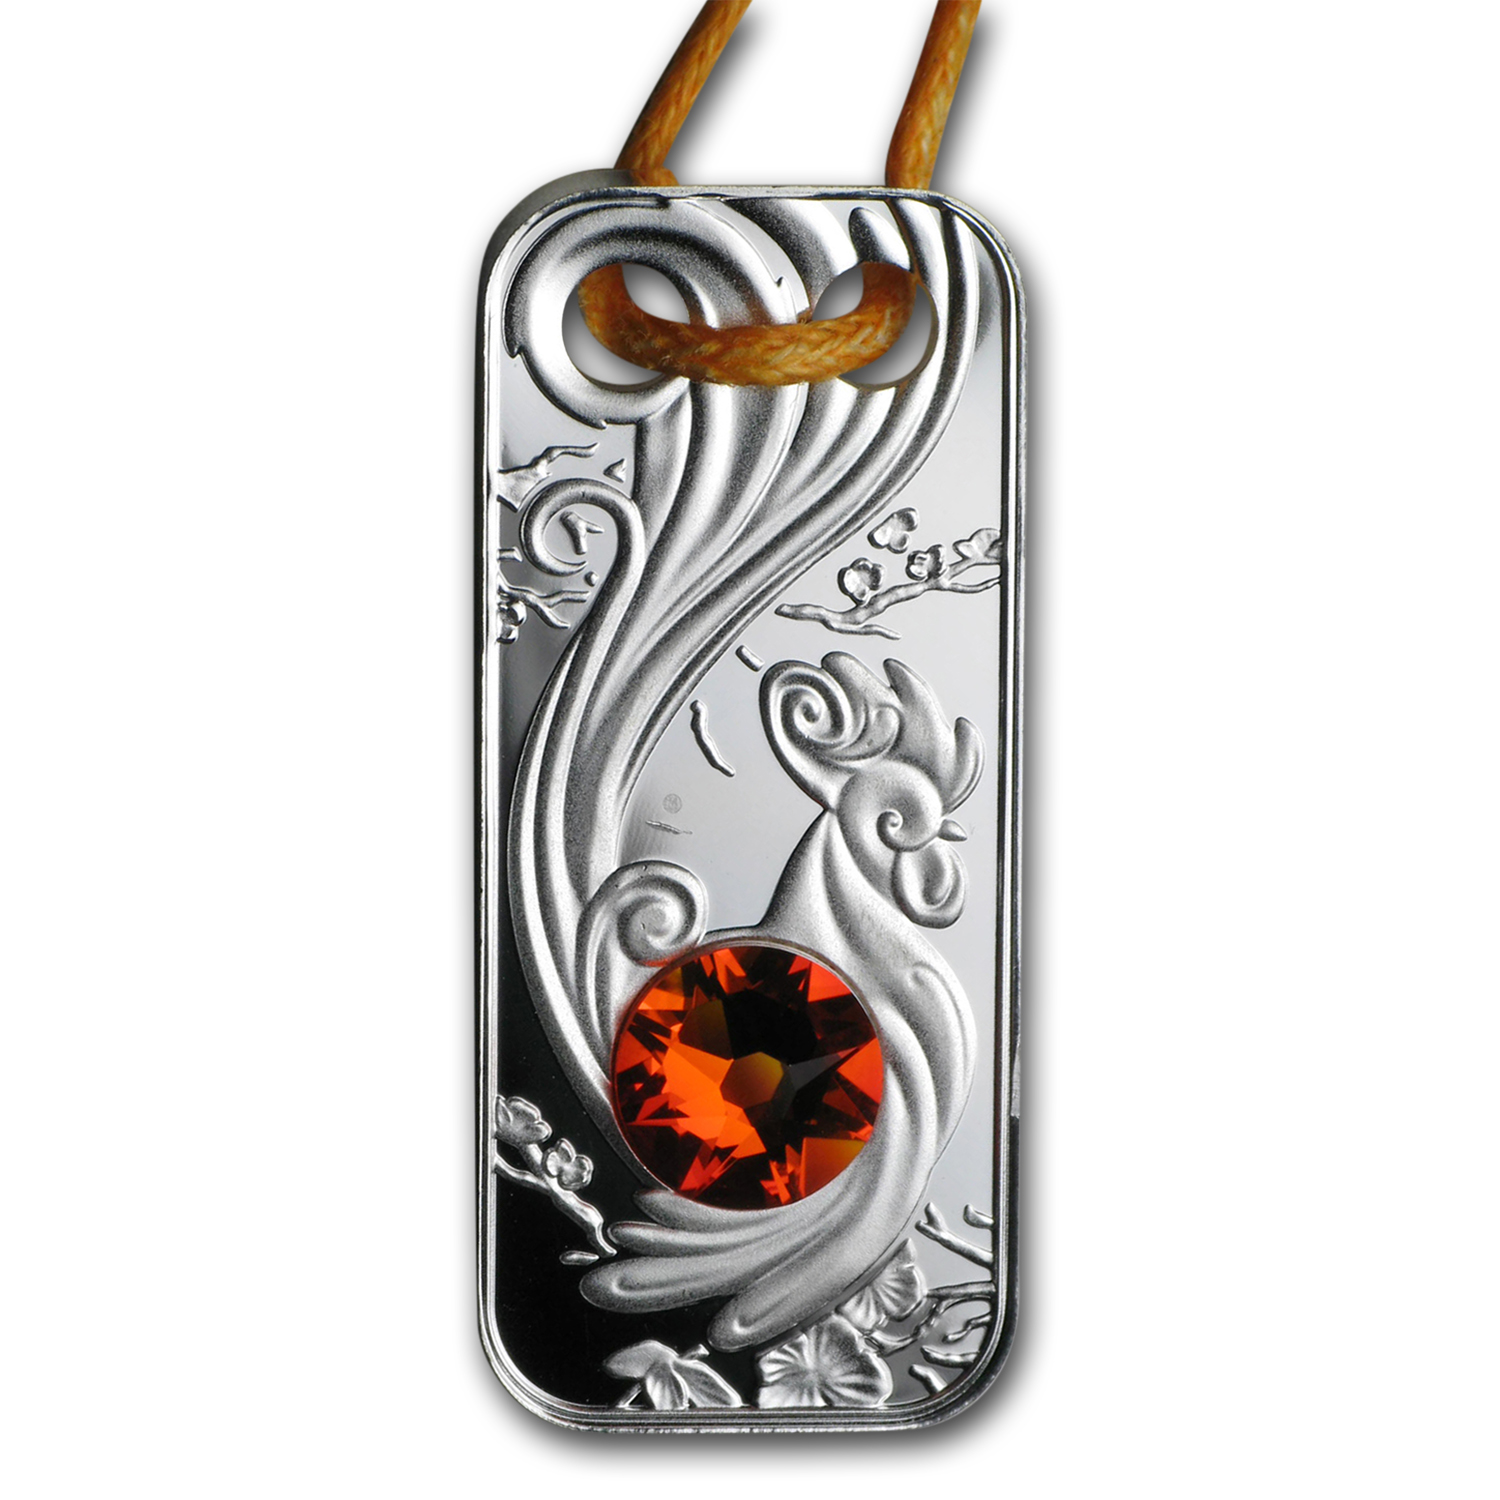 2017 Niue Silver Year of the Rooster Pendant